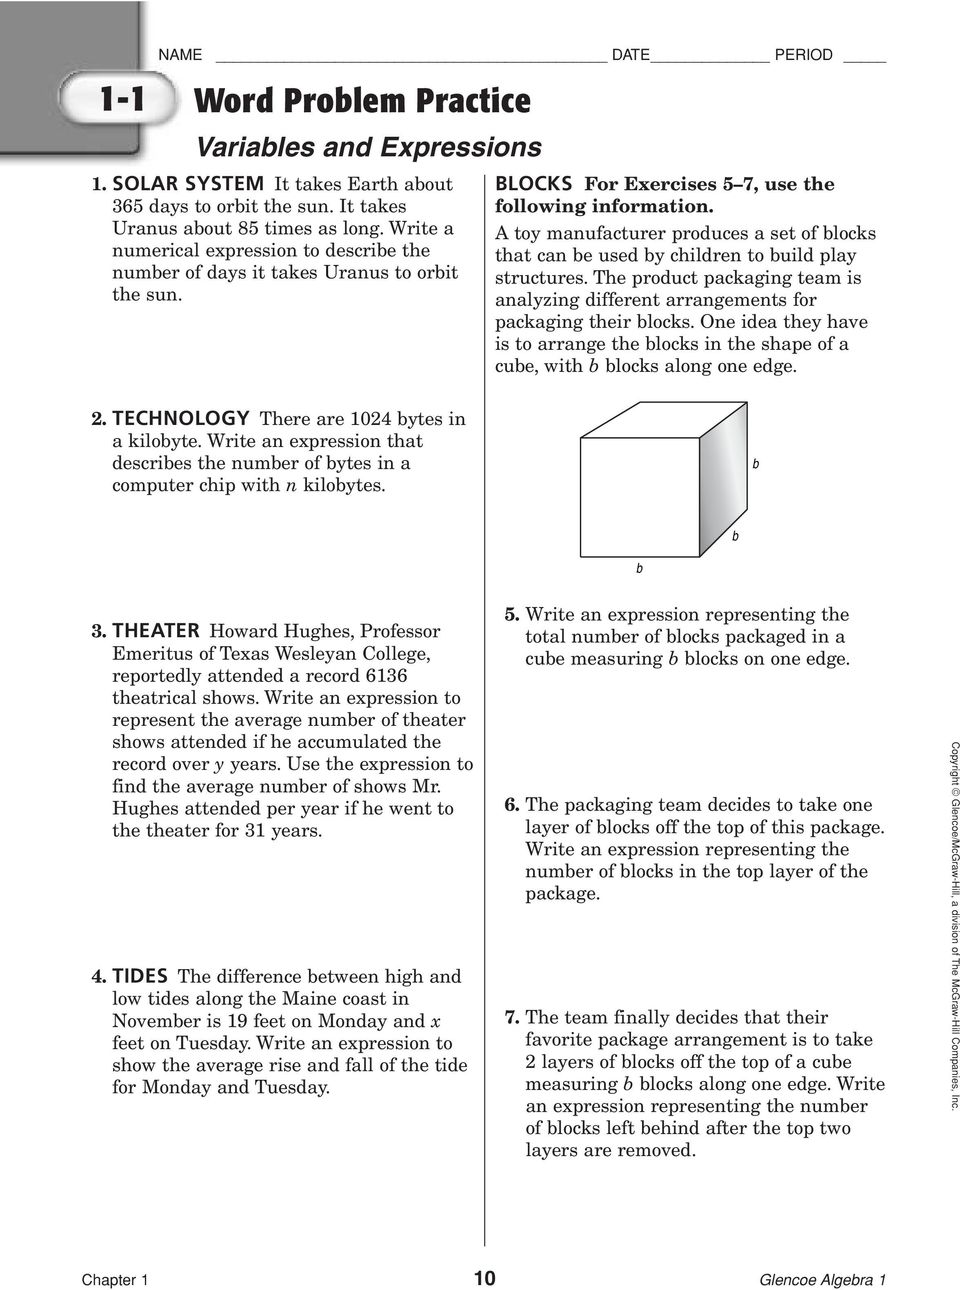 worksheet Algebra 1 Word Problems Worksheet algebra 2 practice problem solving workbook answers 28 images glencoe 1 answer key chapter 8 15 best